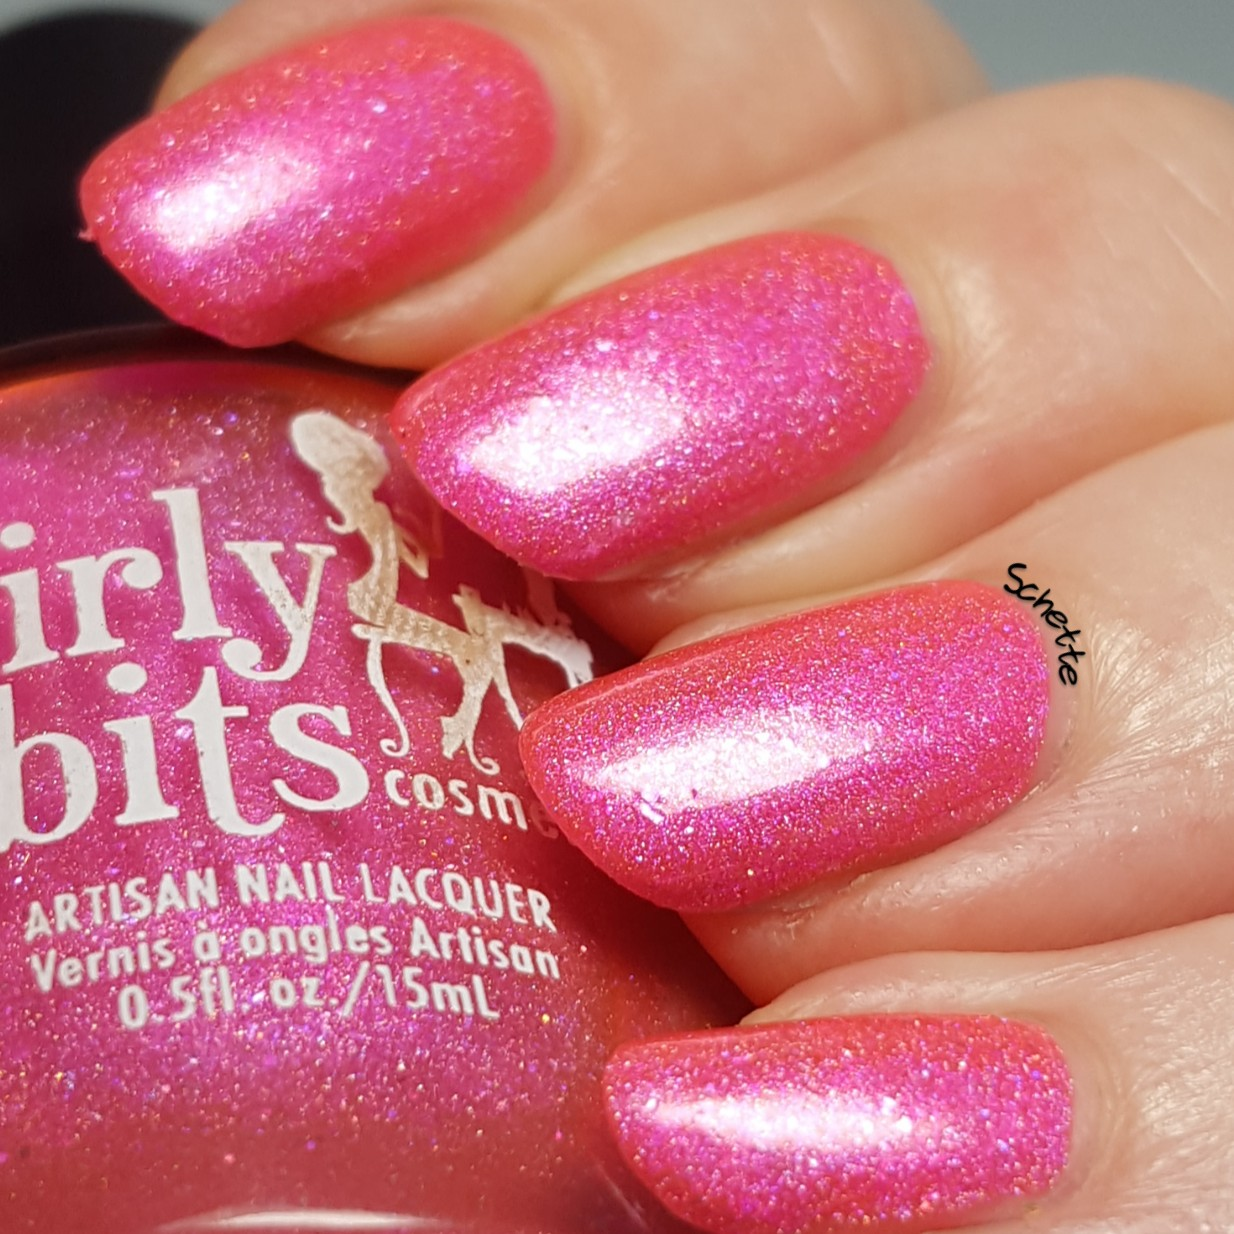 Girly Bits - Our lips are sealed